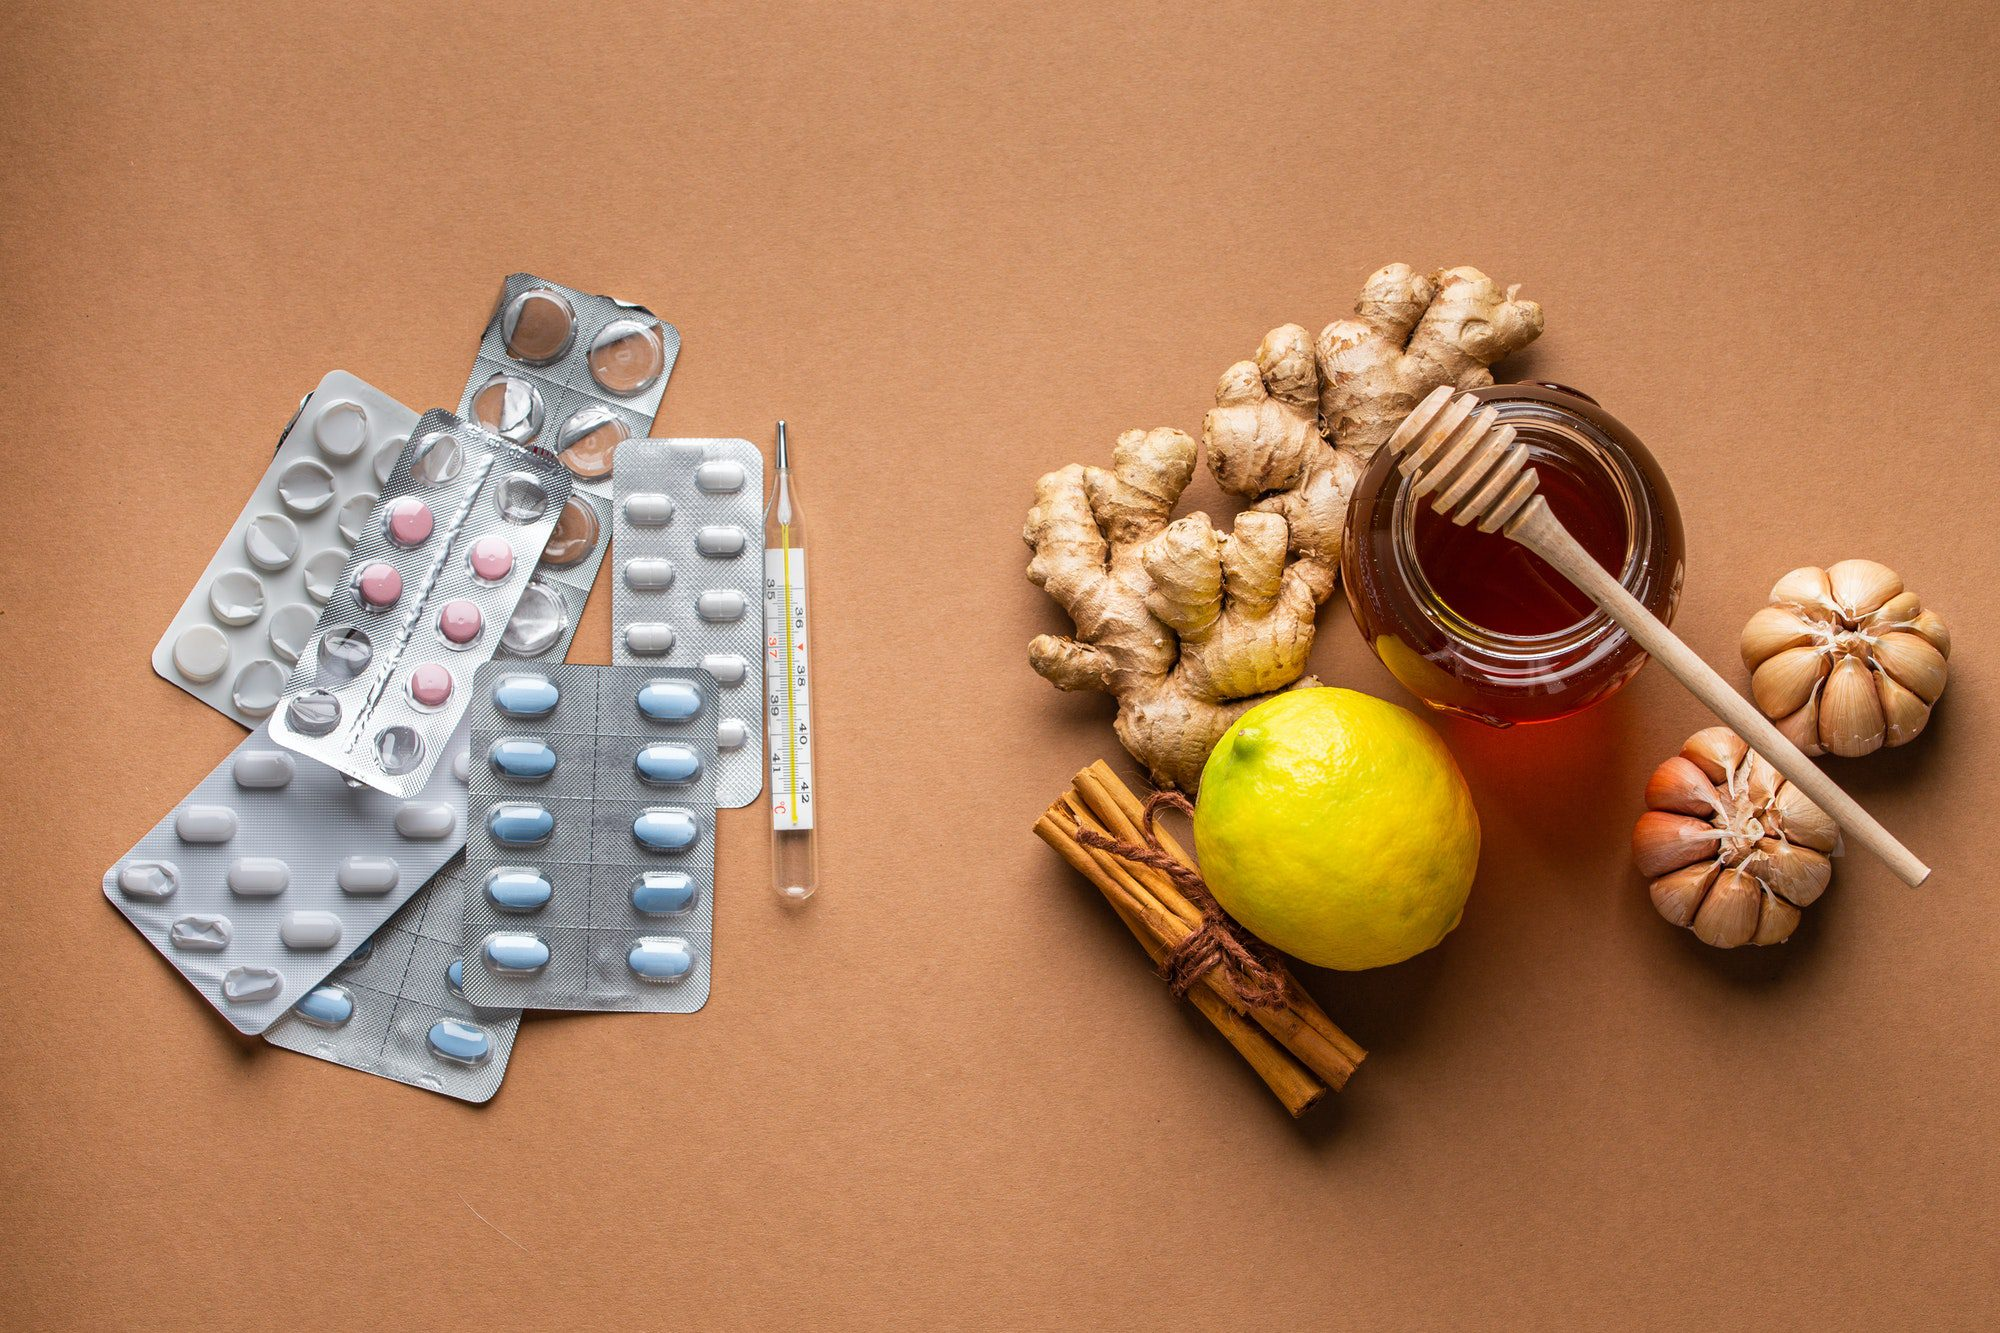 Natural cold and flu home remedies versus synthetic pills and drugs, top view